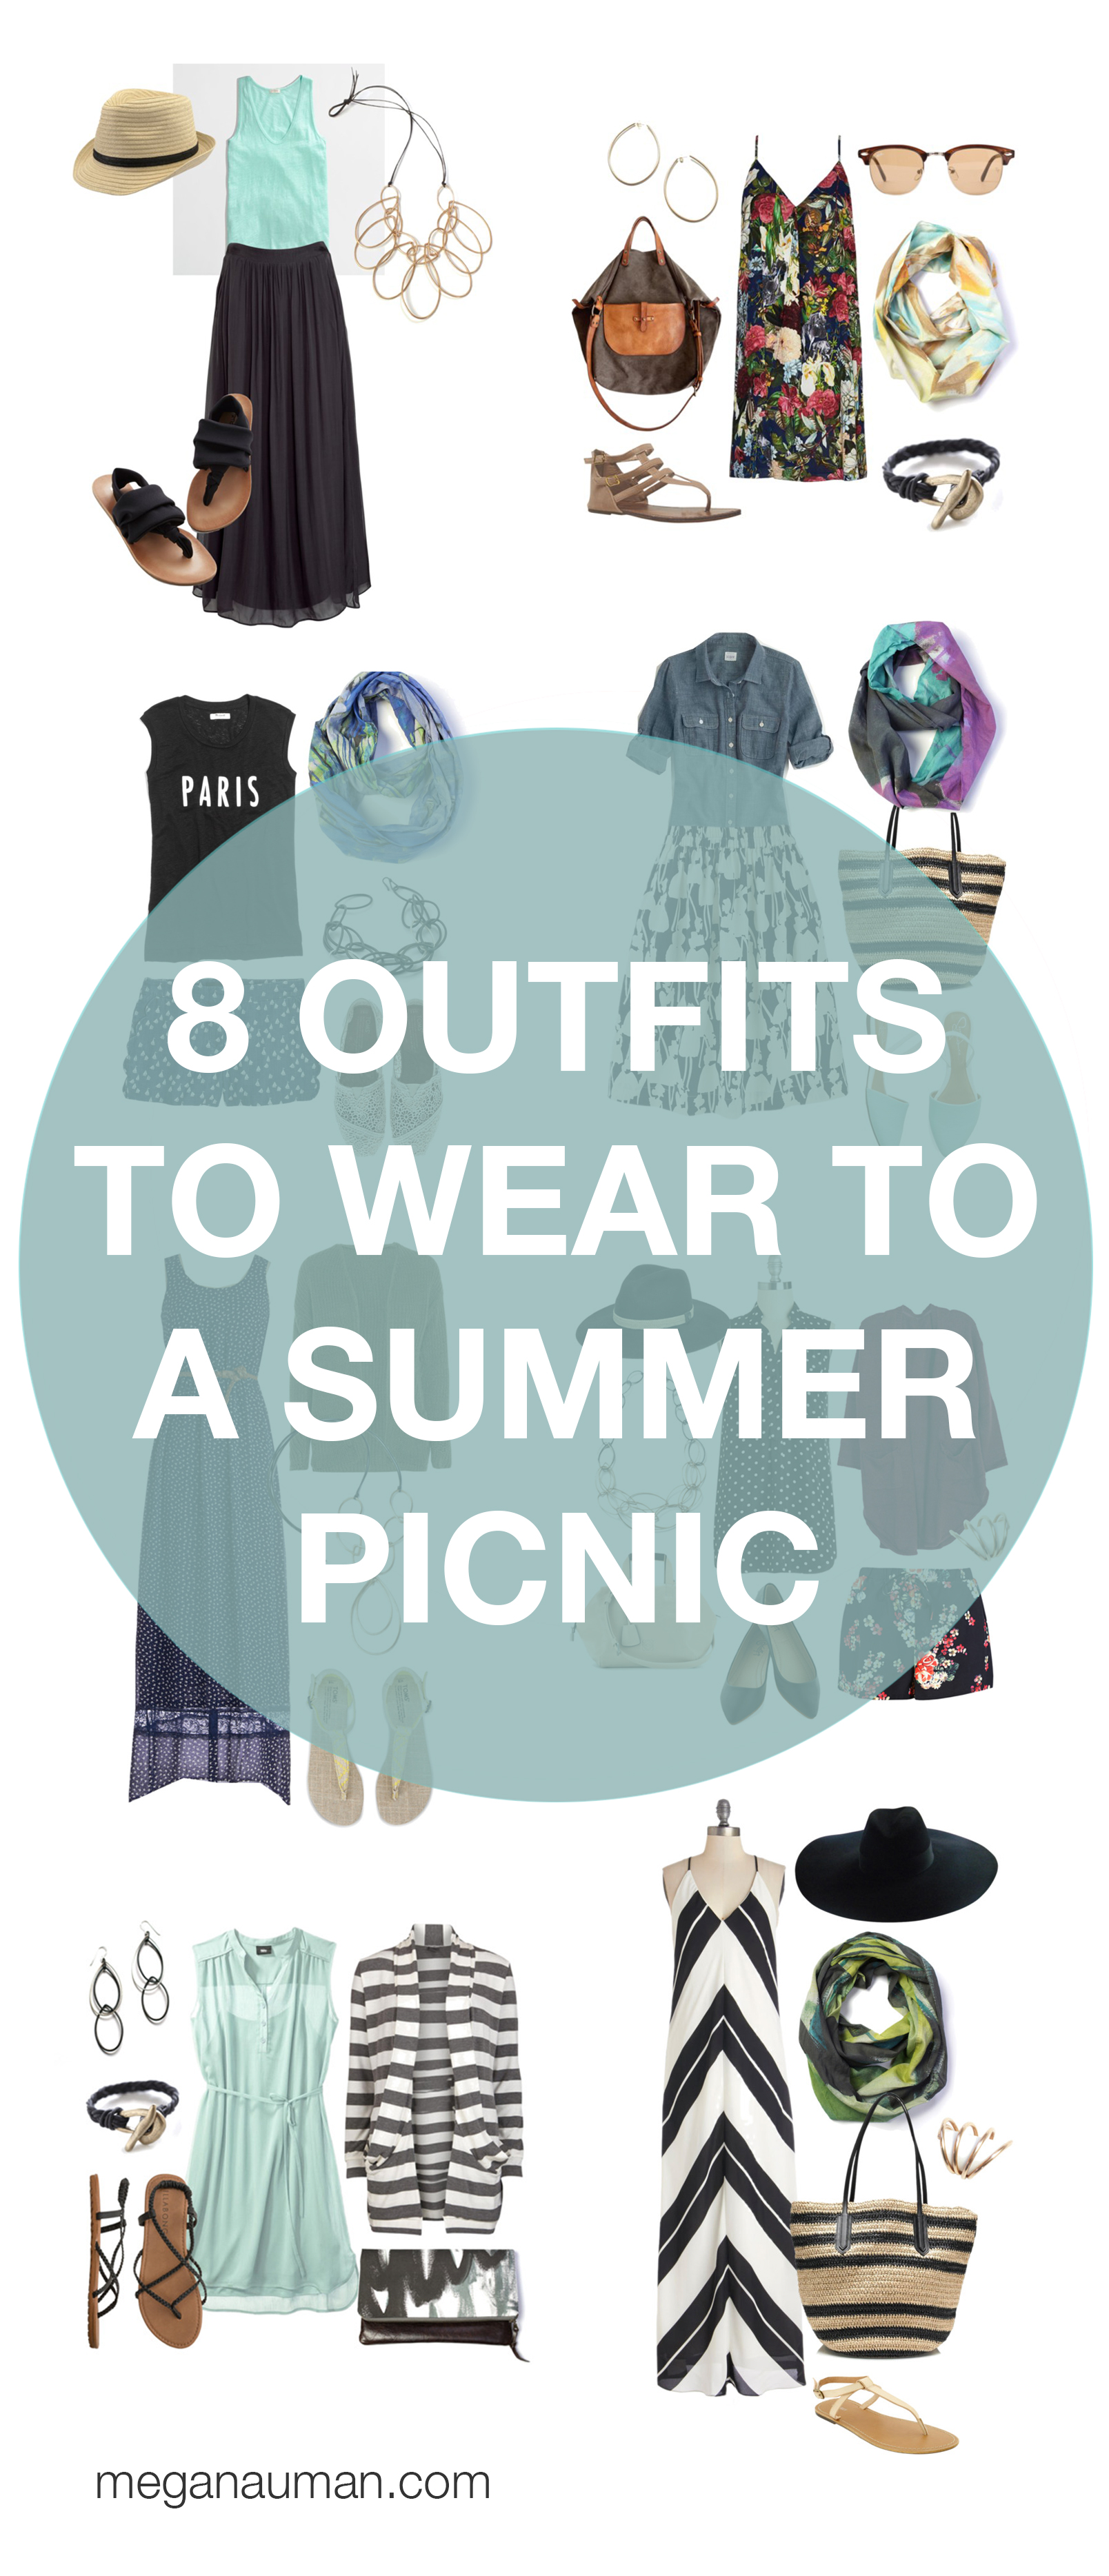 summer style: 8 outfits to wear to a picnic or barbecue